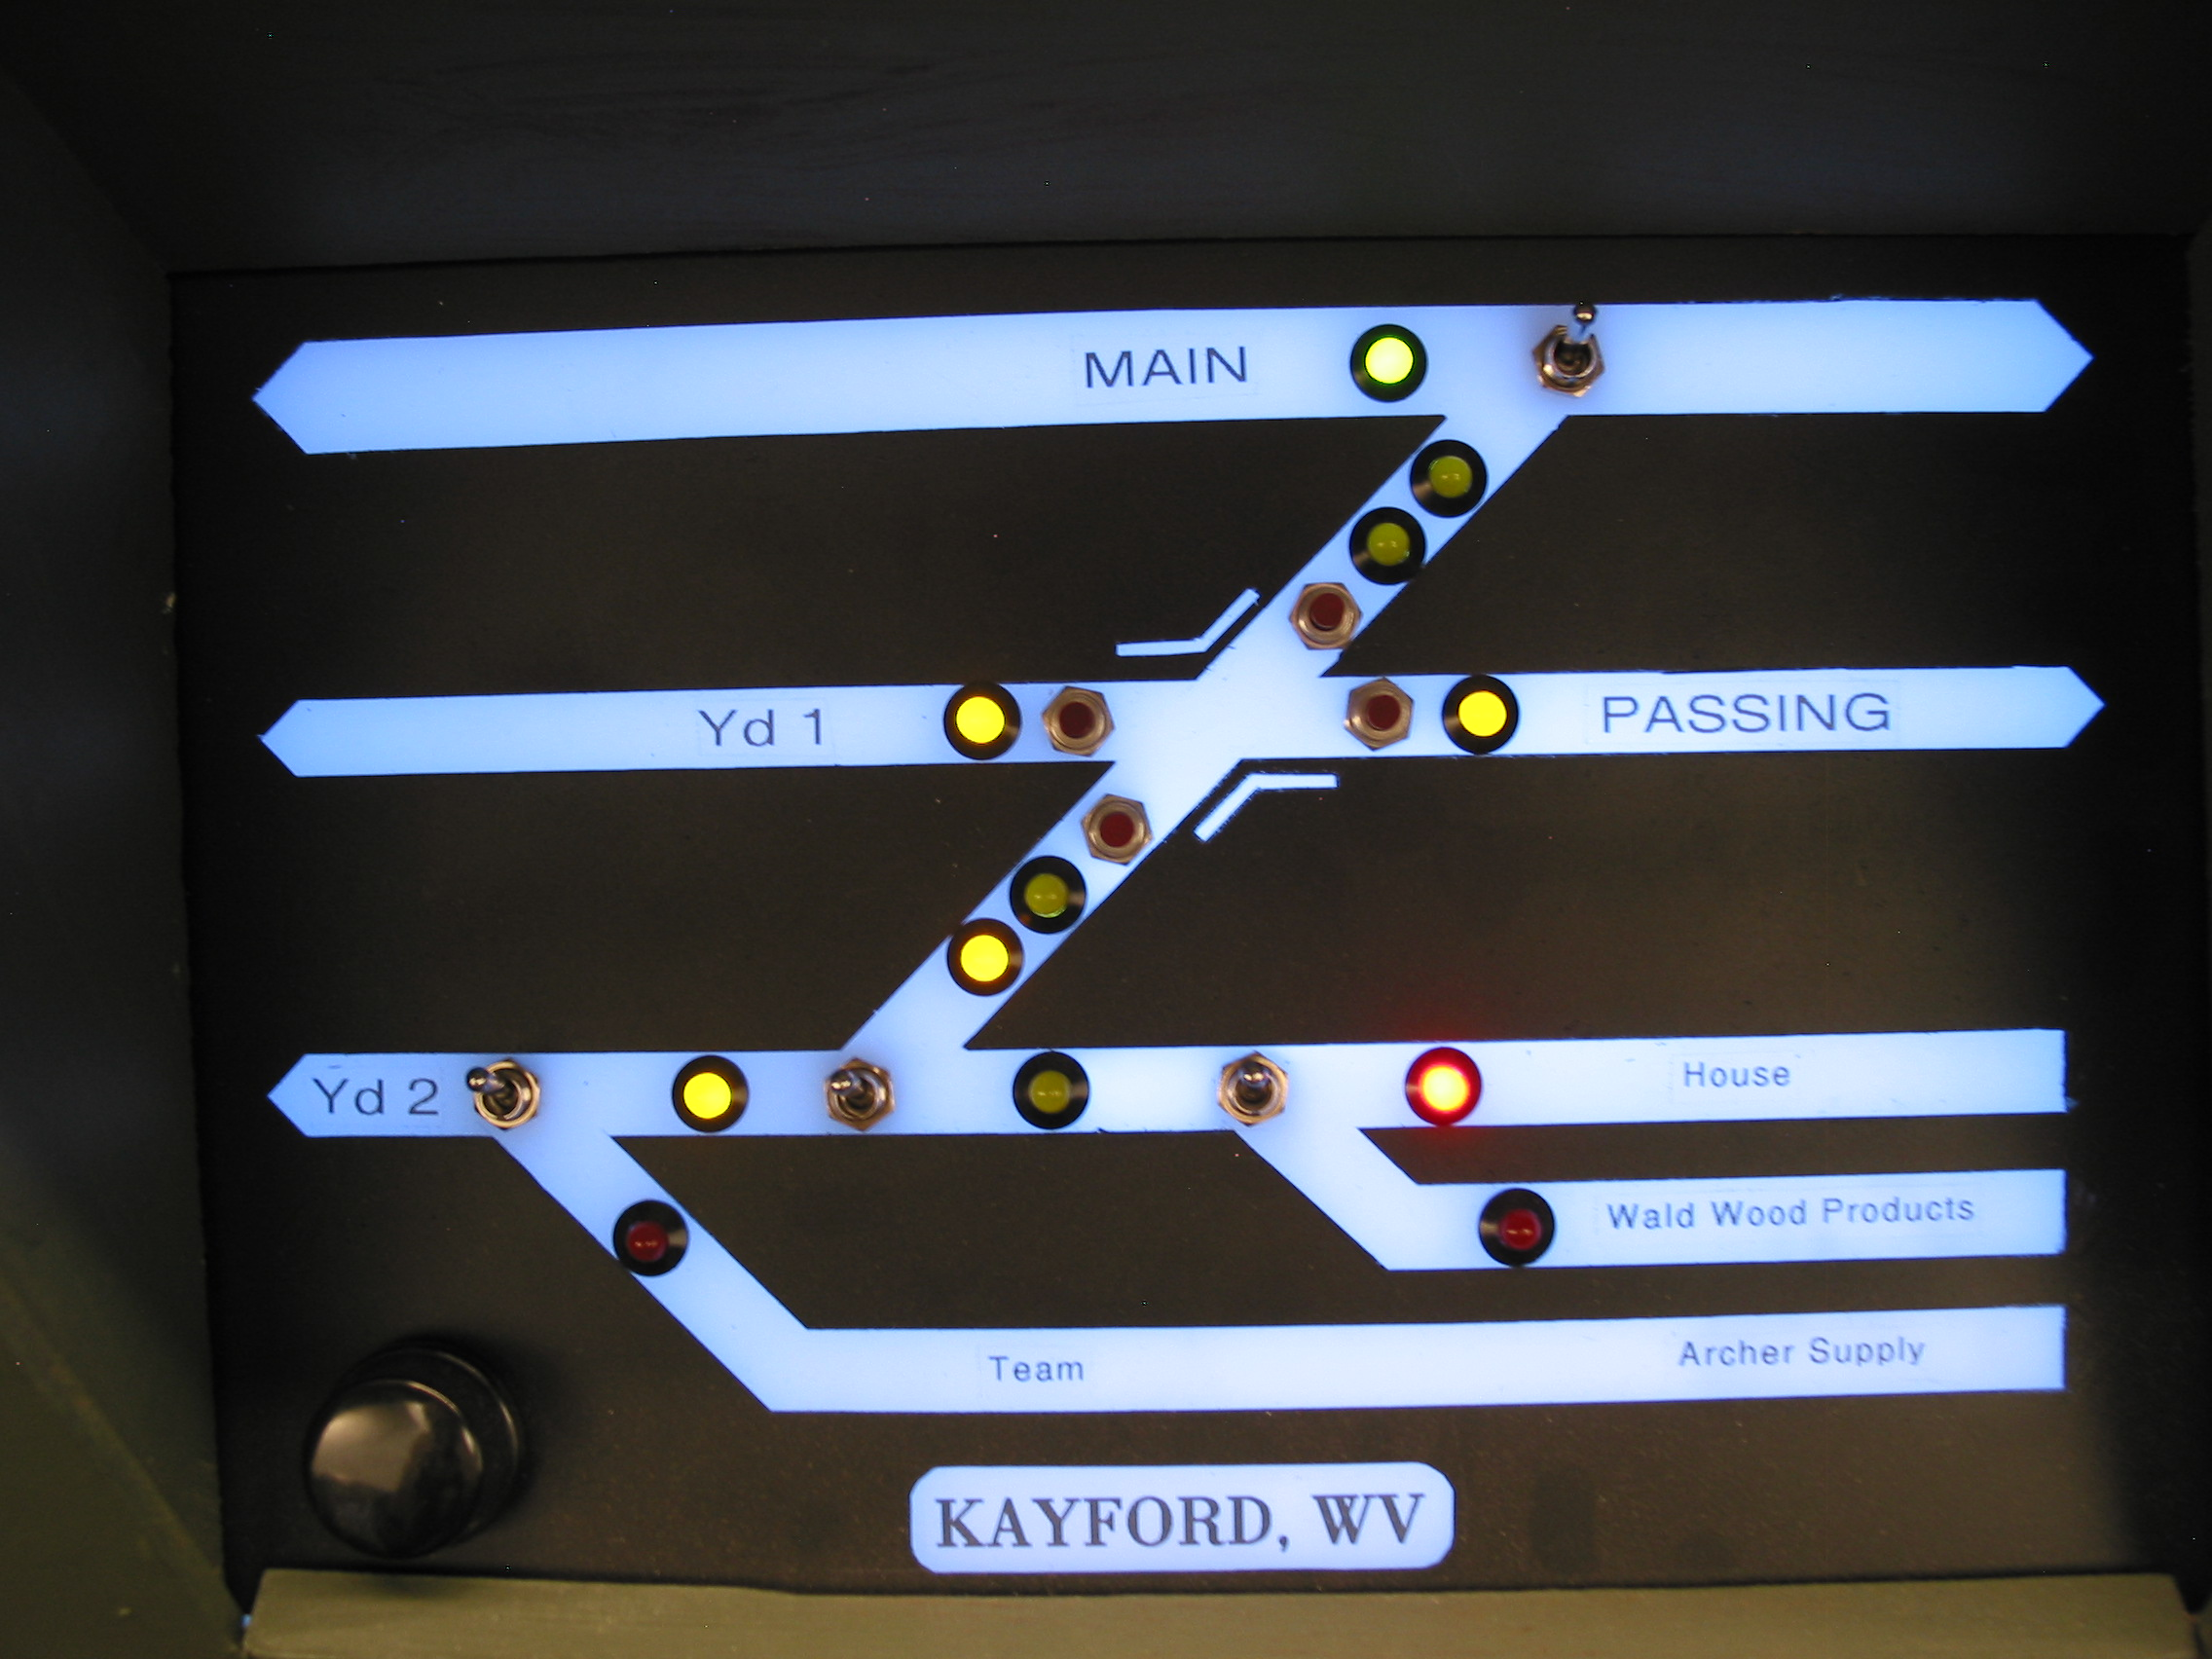 The Kayford, WV panel. Toggles select routes, but pushbuttons handle the double-slip. Just push the button(s) for where you wish go and the proper switch points move. The knob at the lower left dims these LED back-lit panels for night-ops.